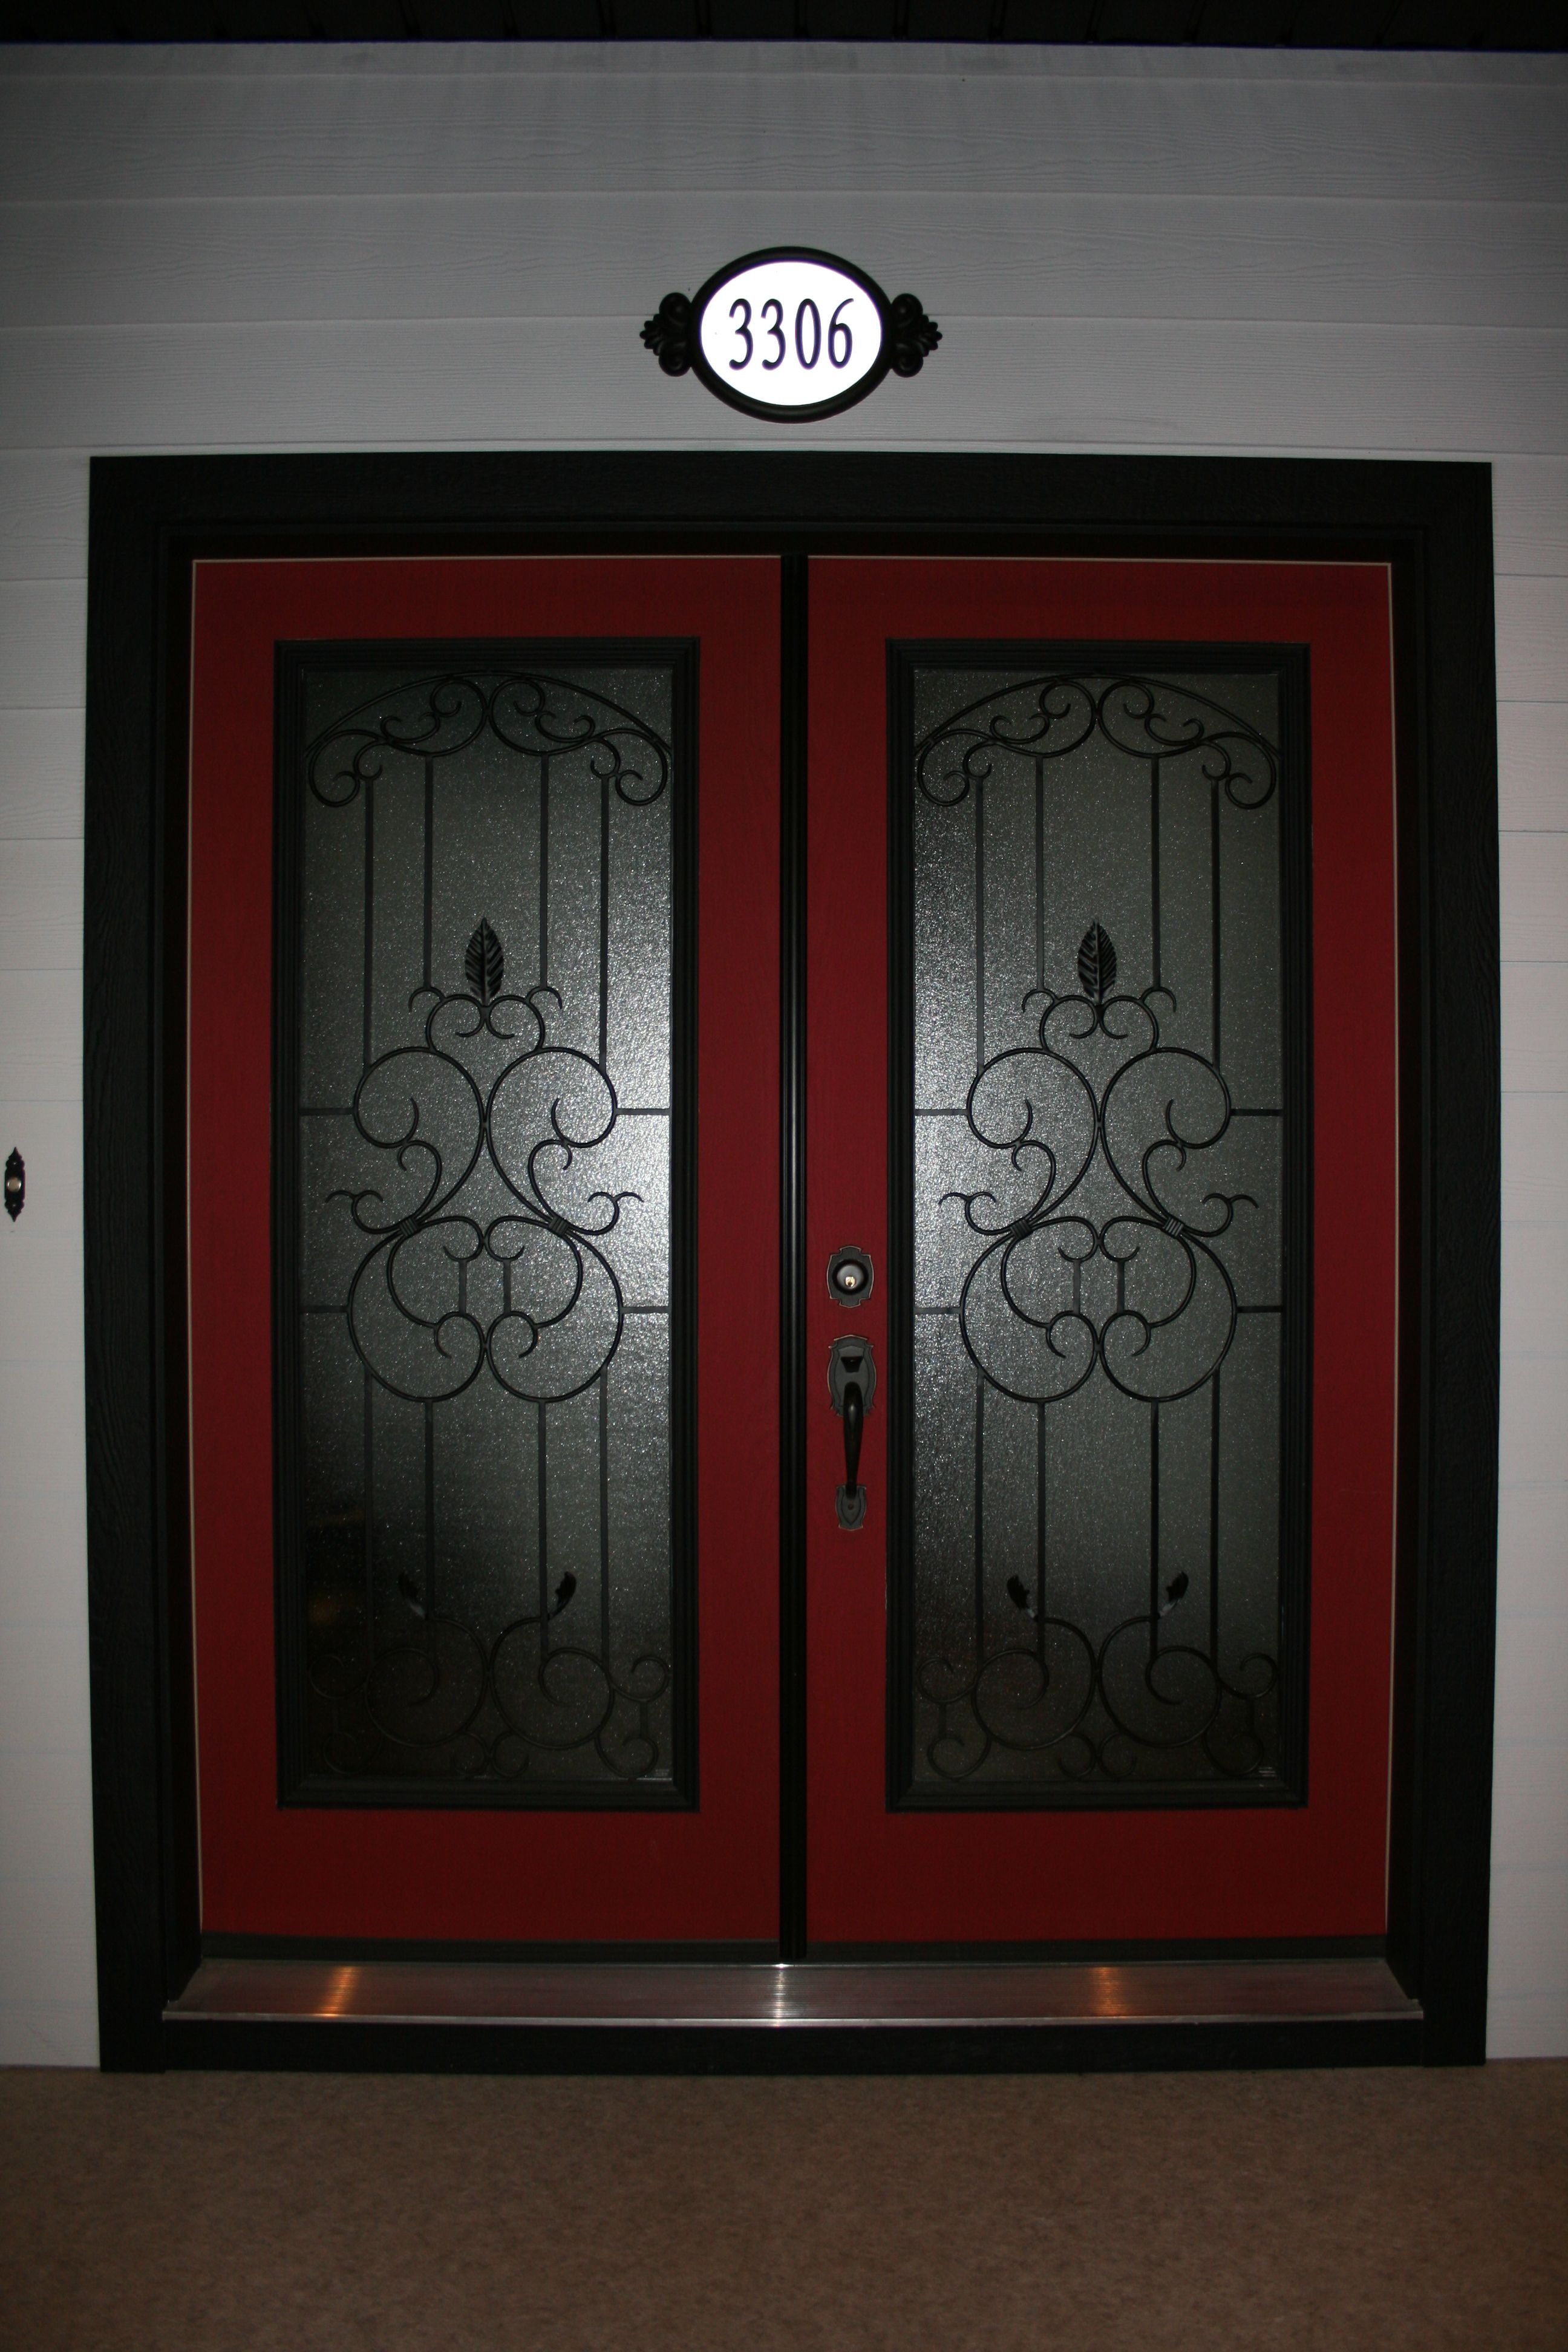 The Red Door In Feng Shui Means Hospitality And Warm Welcome And In The American Tradition A House With A Red Door Was Ready Red Door Welcome Home Feng Shui